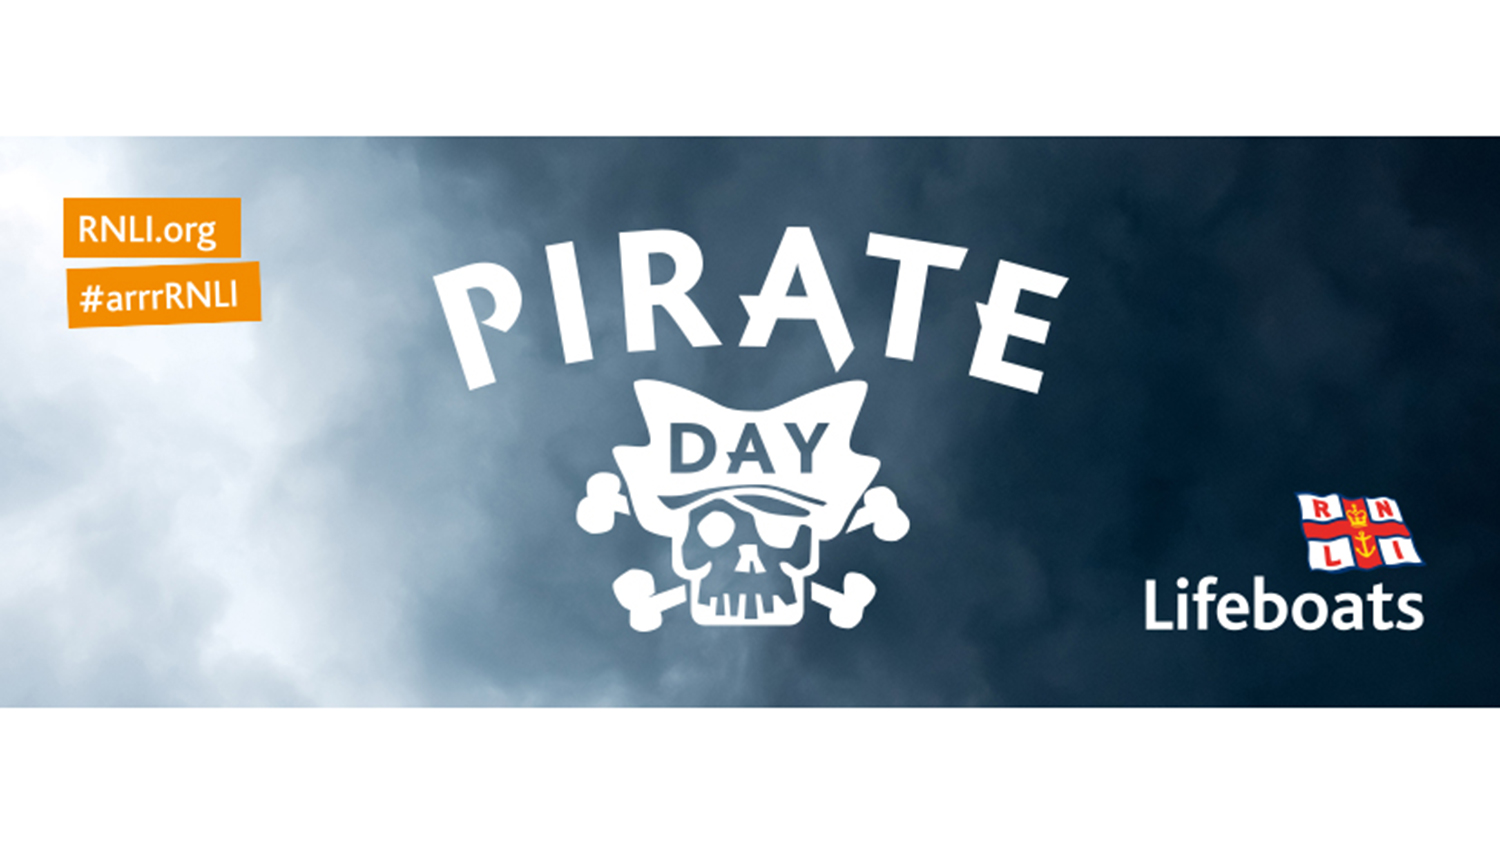 Pirate day Facebook cover